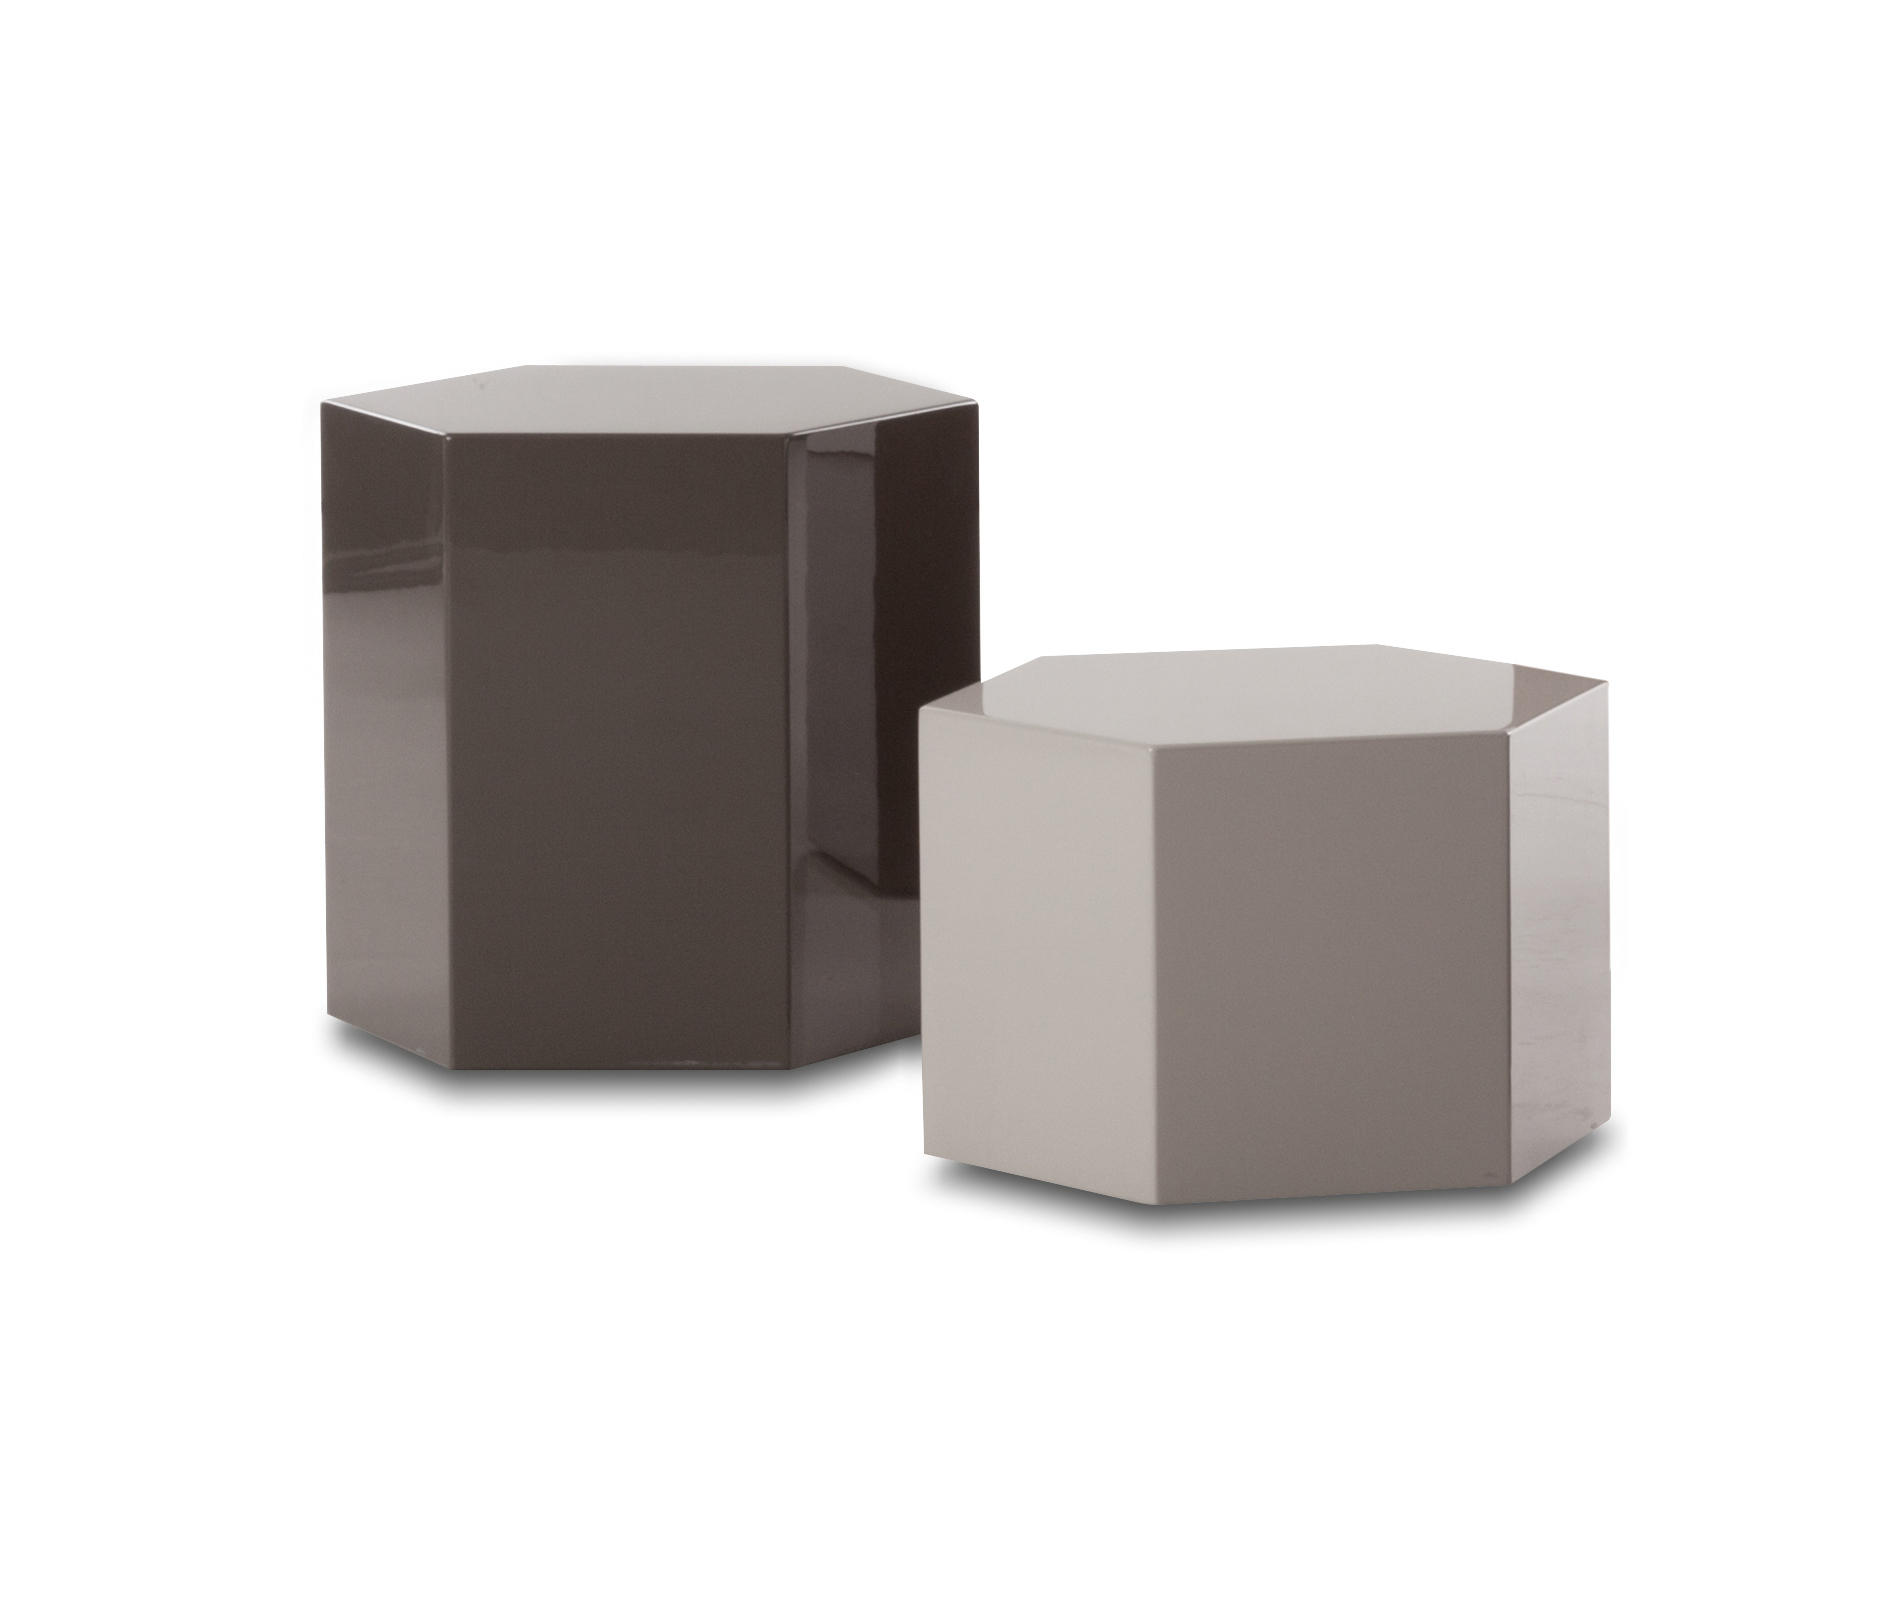 aeron outdoor accent tables side from minotti architonic wood table unique dining chairs nautical themed bedroom ikea small storage foyer chest furniture pier one clearance narrow